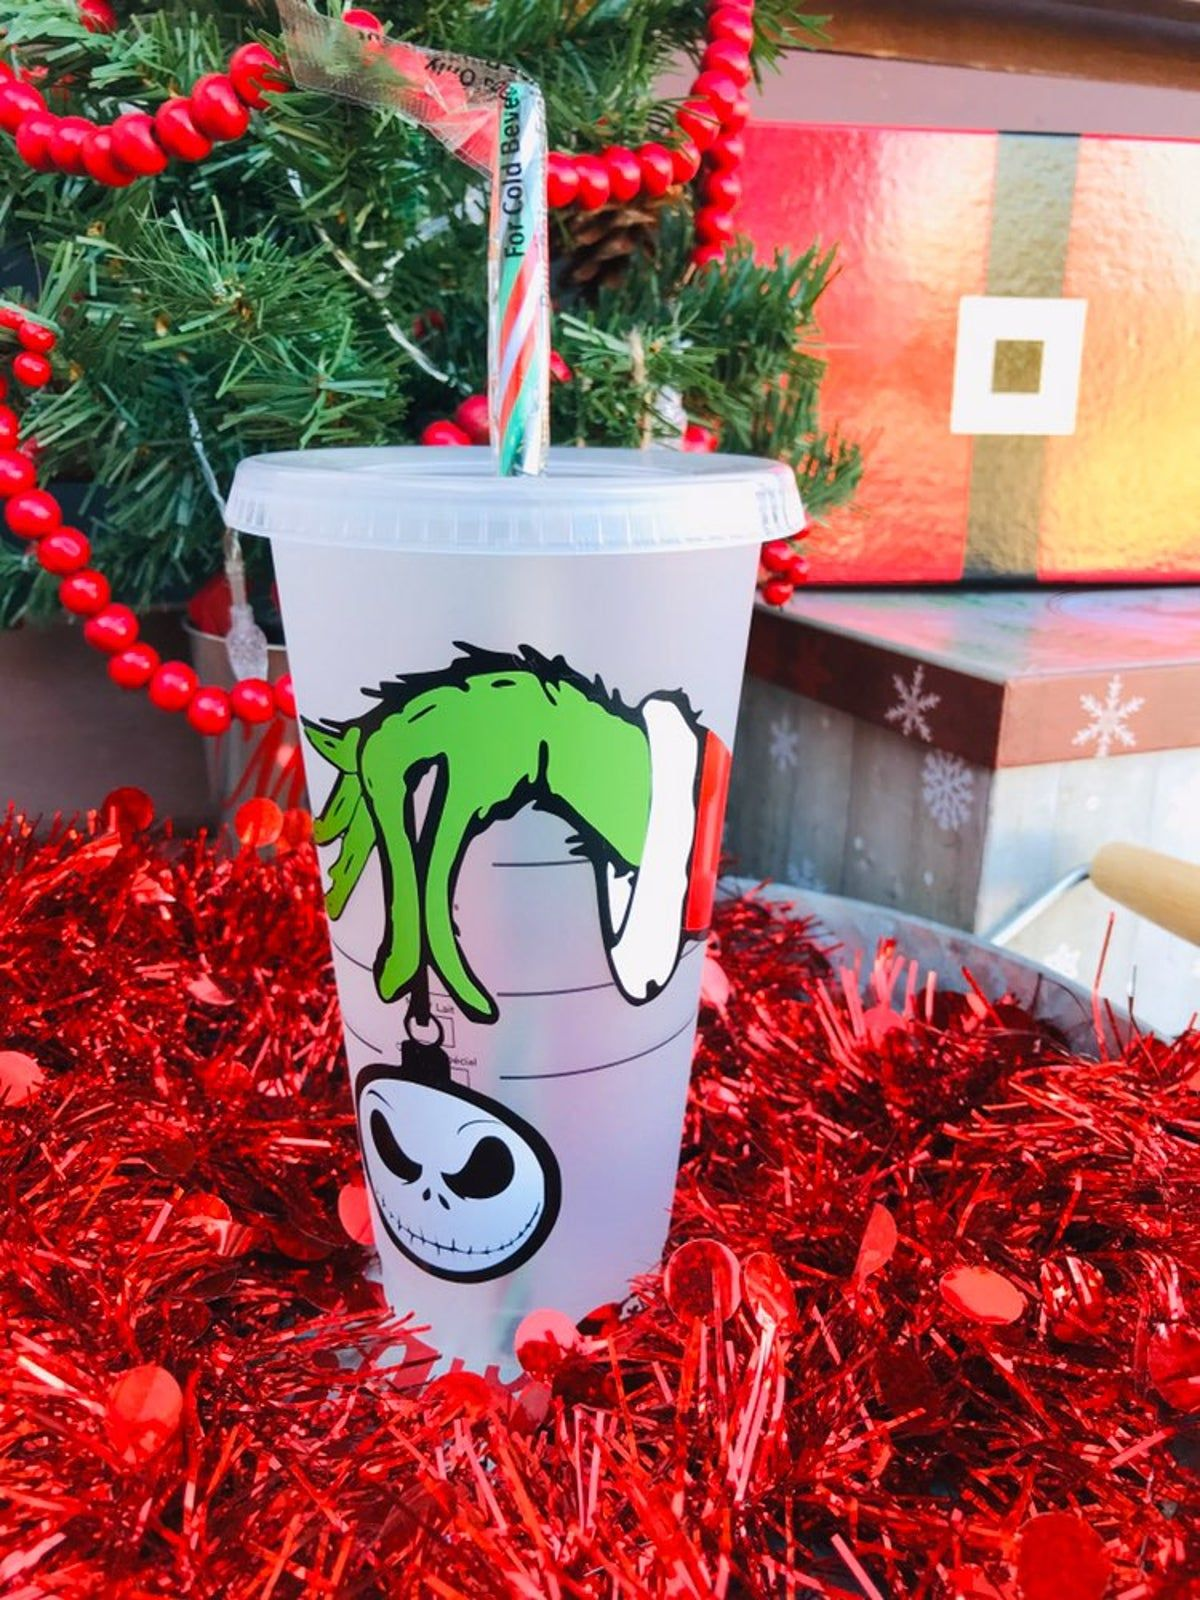 Starbucks Reusable Cold Cup Grinch in 2020 | Christmas tumblers